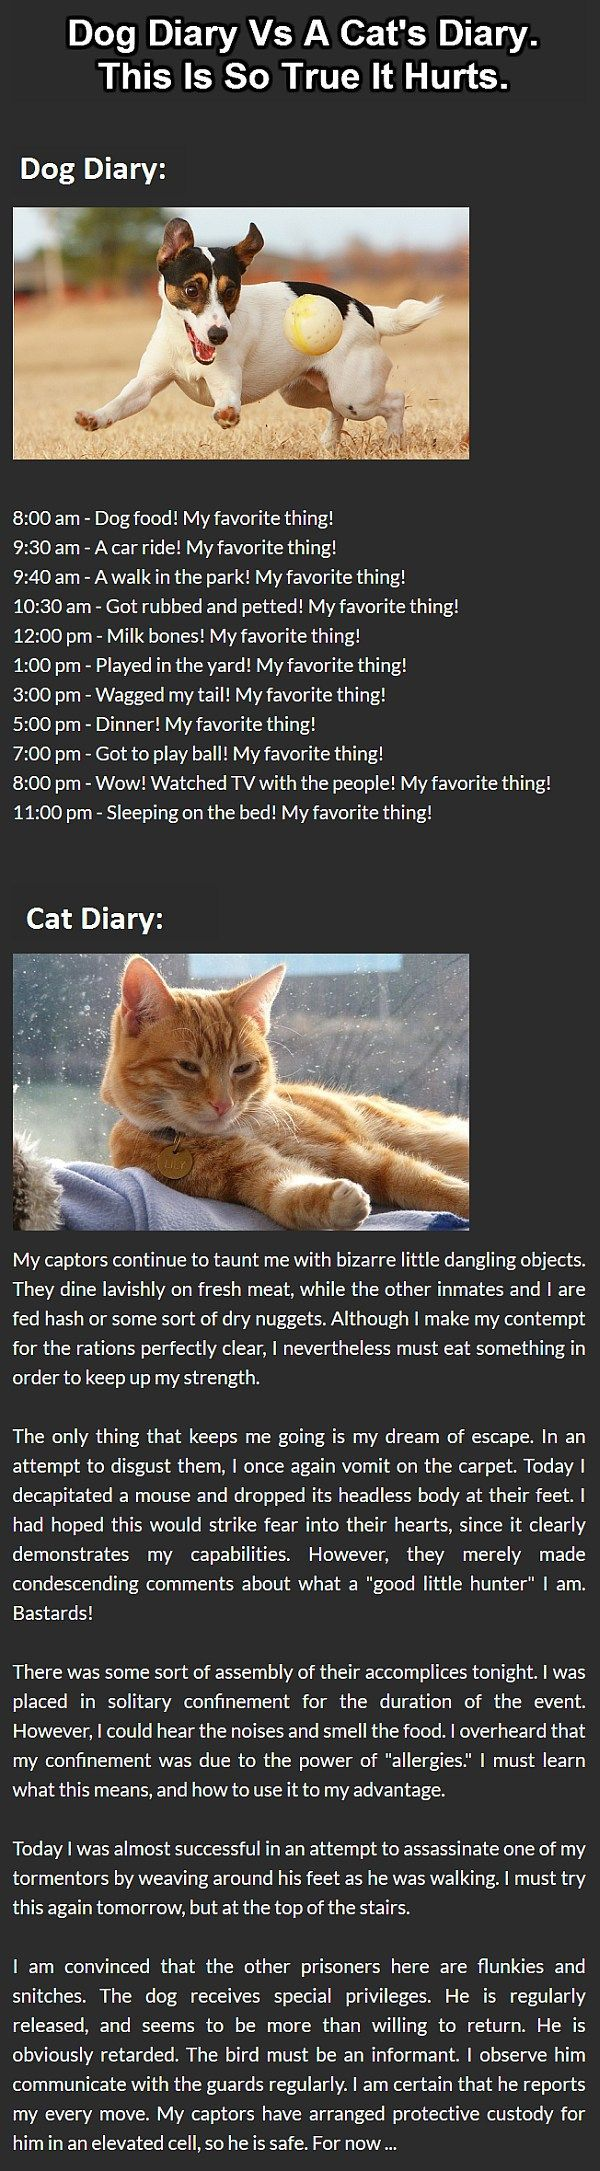 This Is What It Would Be Like If Your Pets Had Diaries Mascotas - Cats who tried so hard but failed in the most hilarious ways